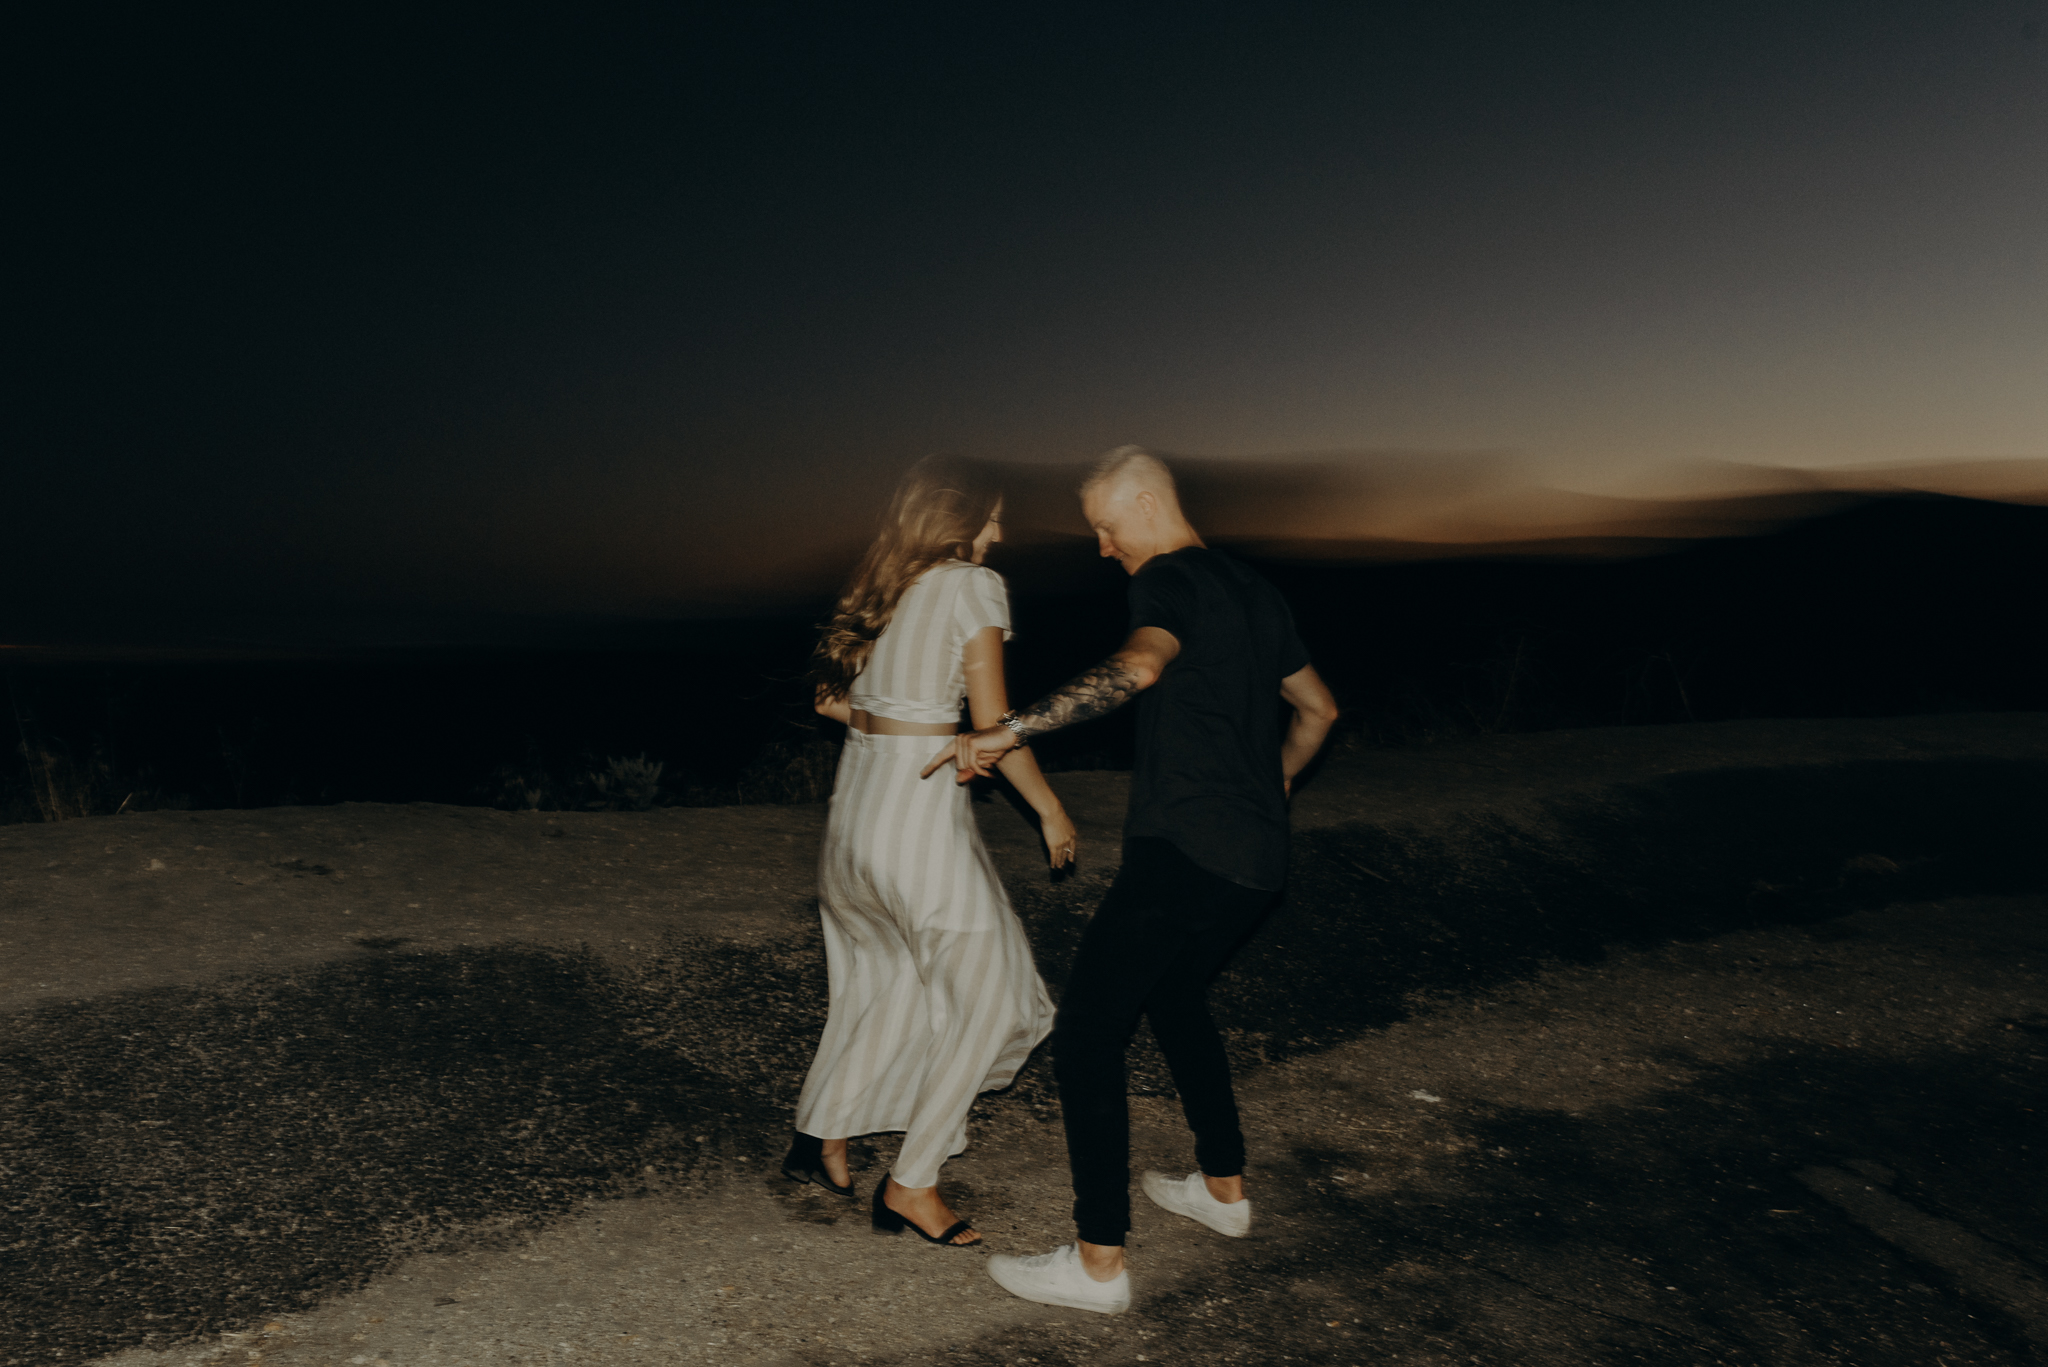 Isaiah + Taylor Photography - Los Angeles Forest Engagement Session - Laid back wedding photographer-059.jpg